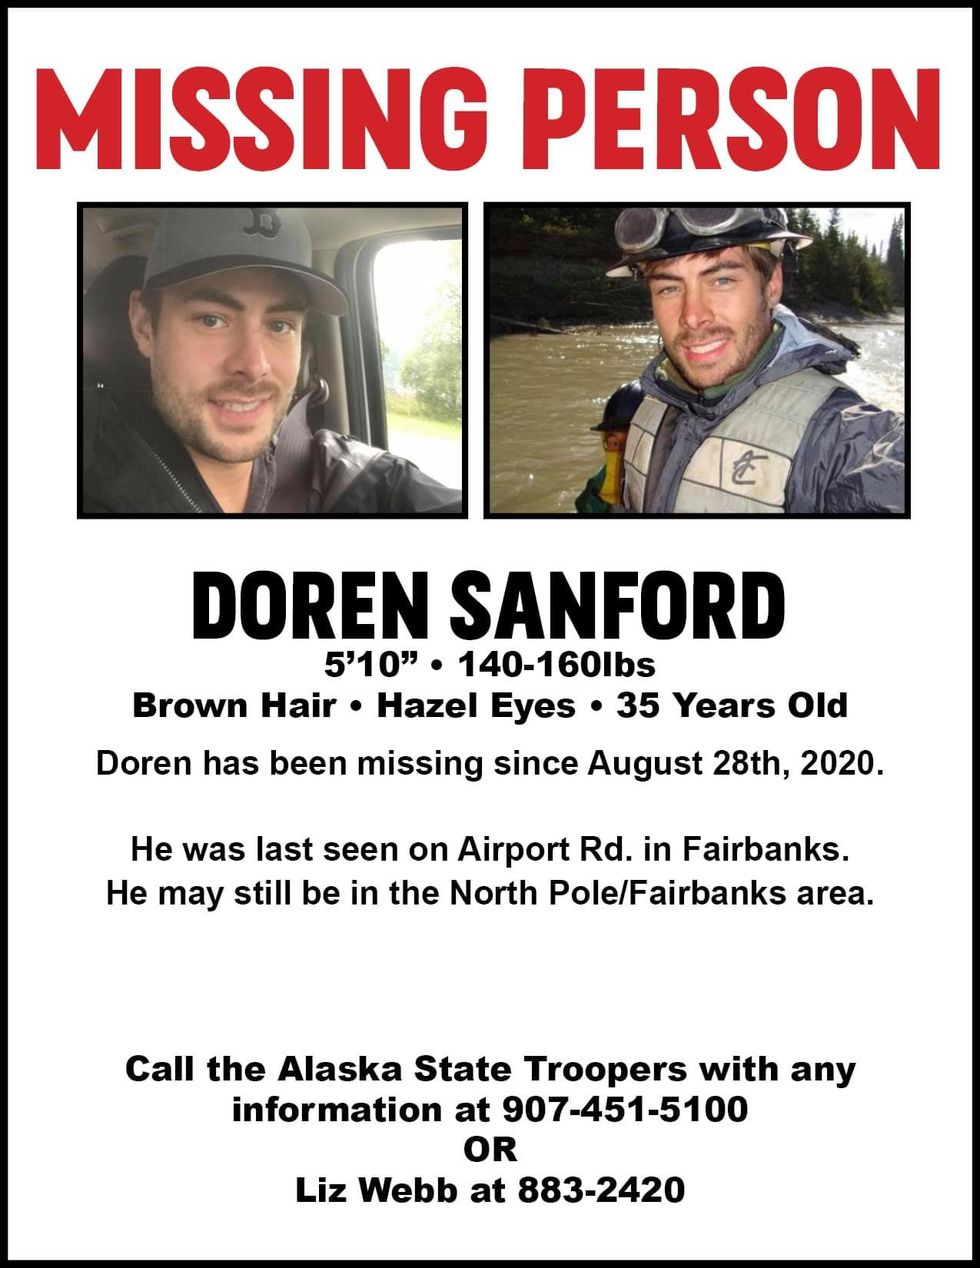 Alaska State Troopers are seeking information on a man who has gone missing.